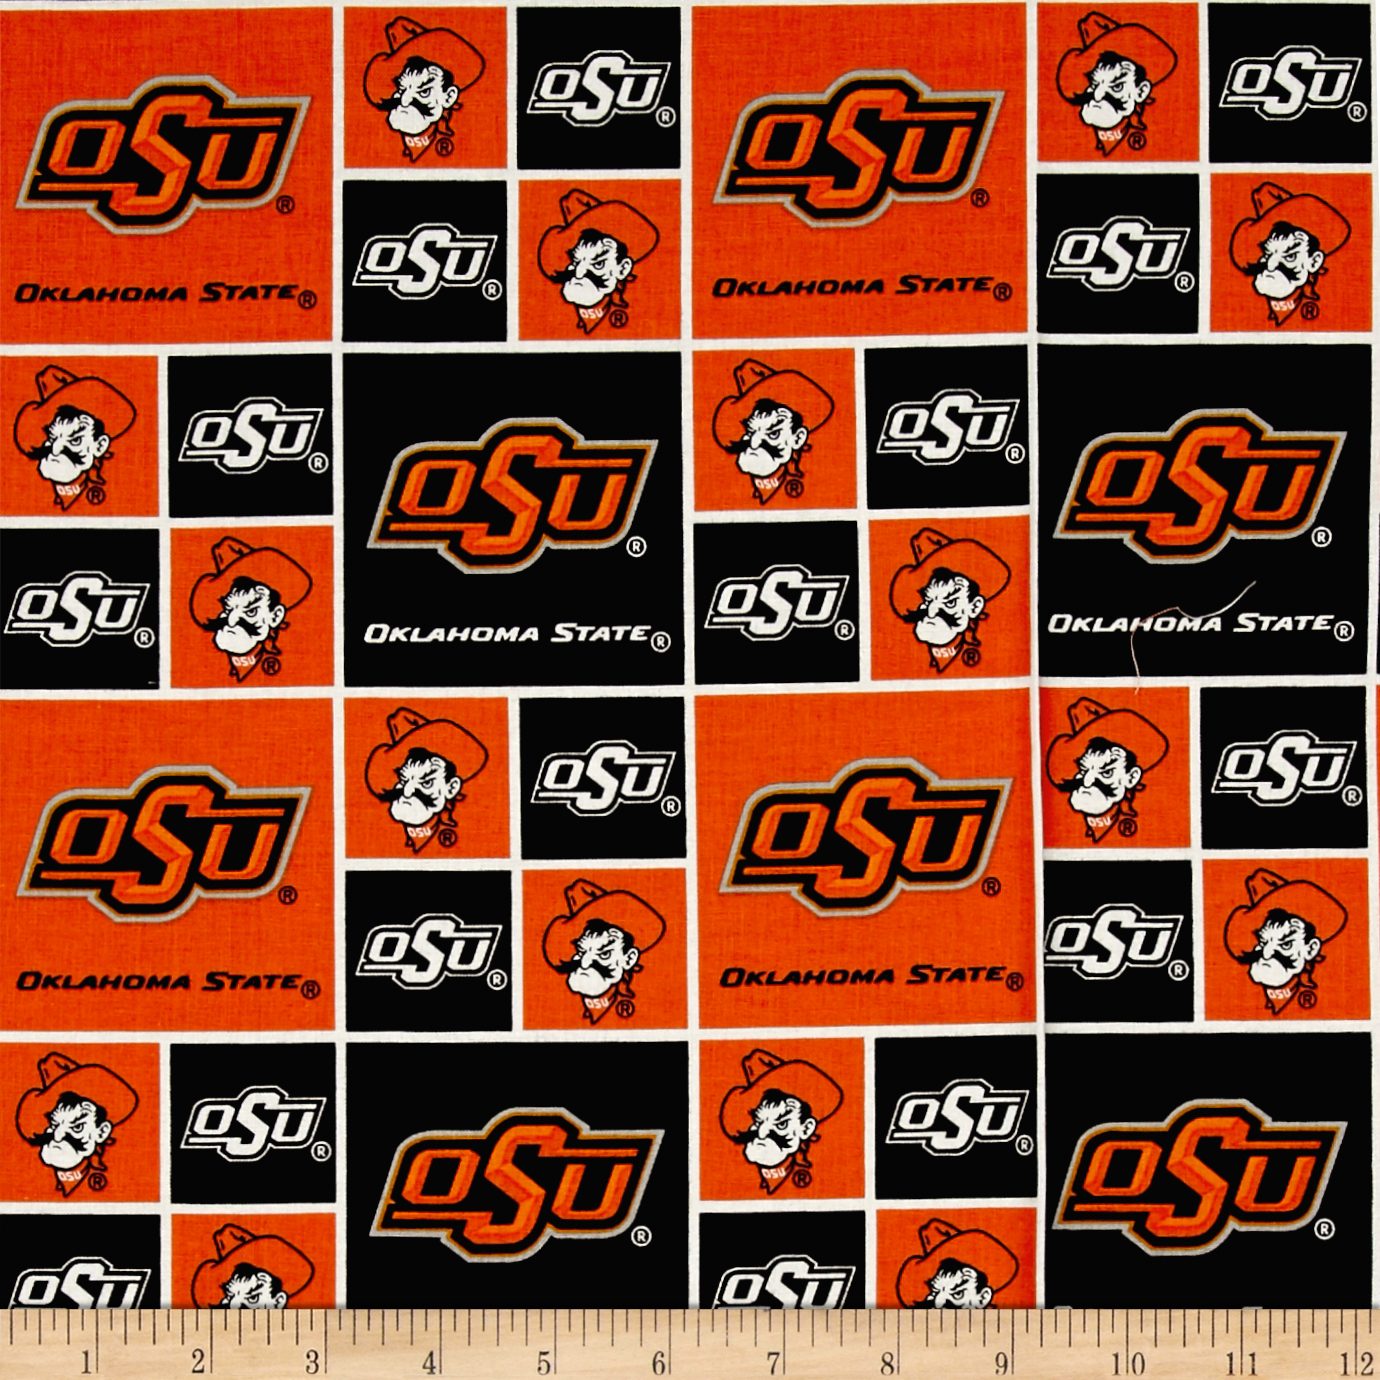 Collegiate Cotton Broadcloth Oklahoma State University Cowboys Fabric AP-664